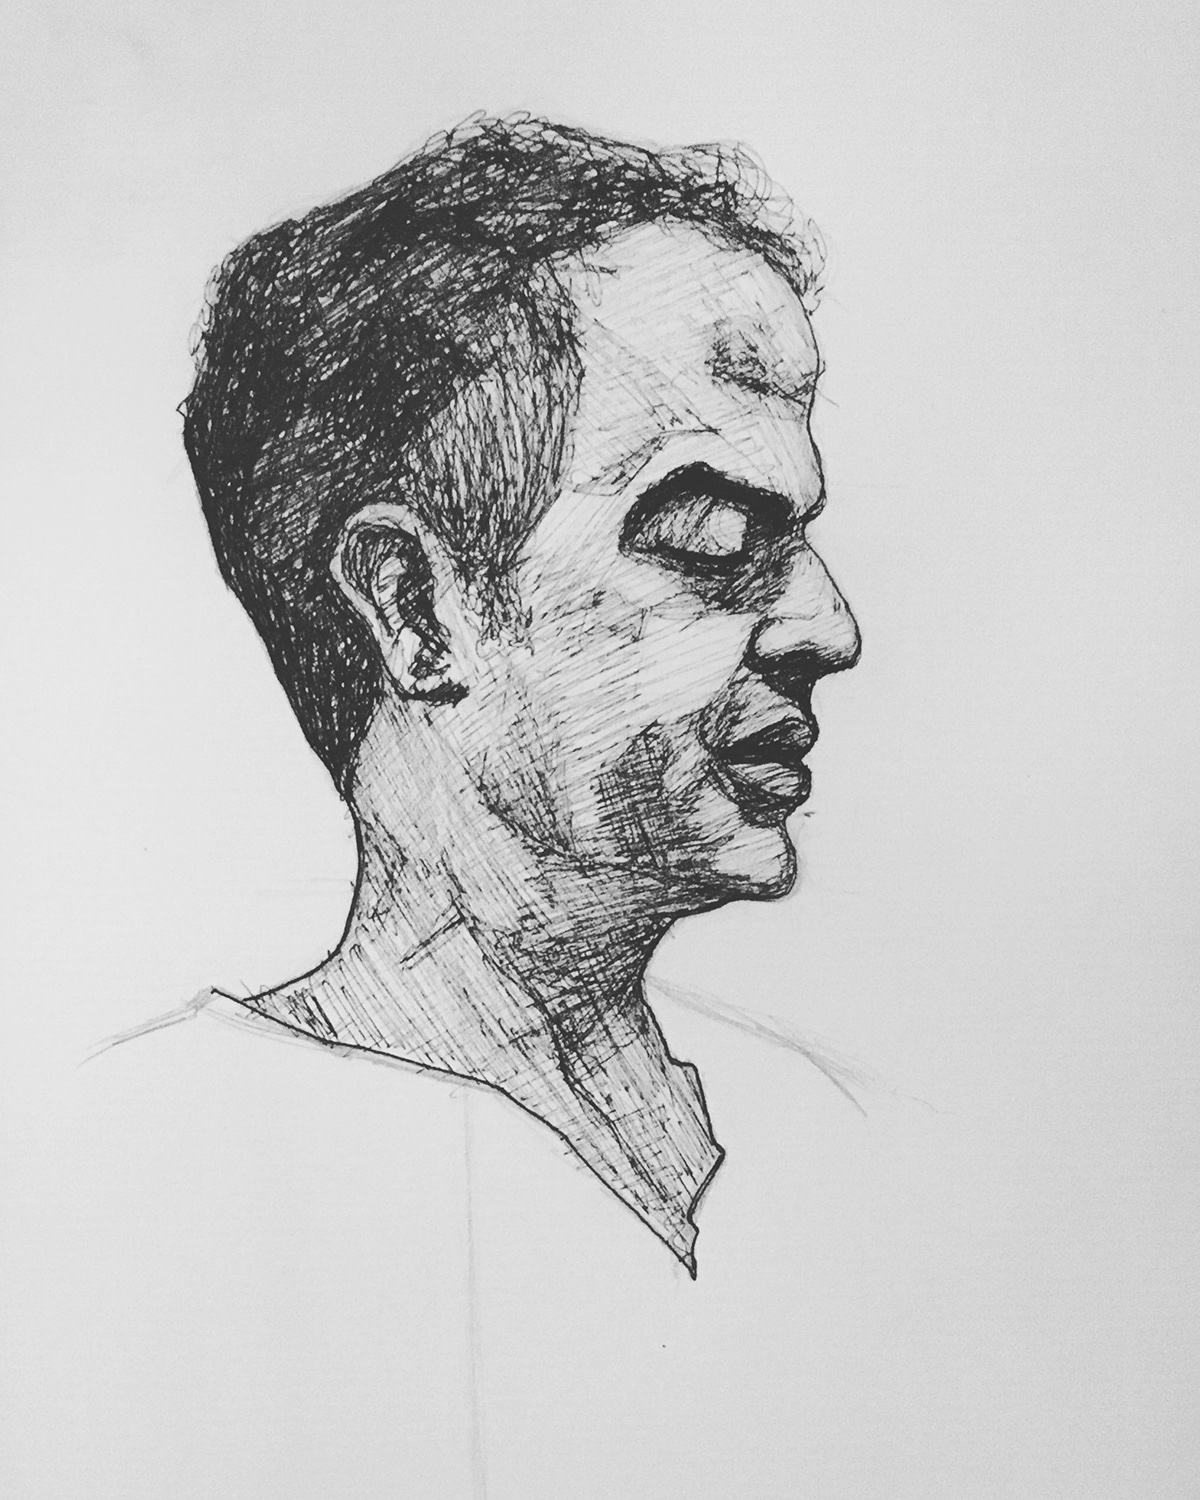 portrait Portraiture life drawing face human Classic traditional head